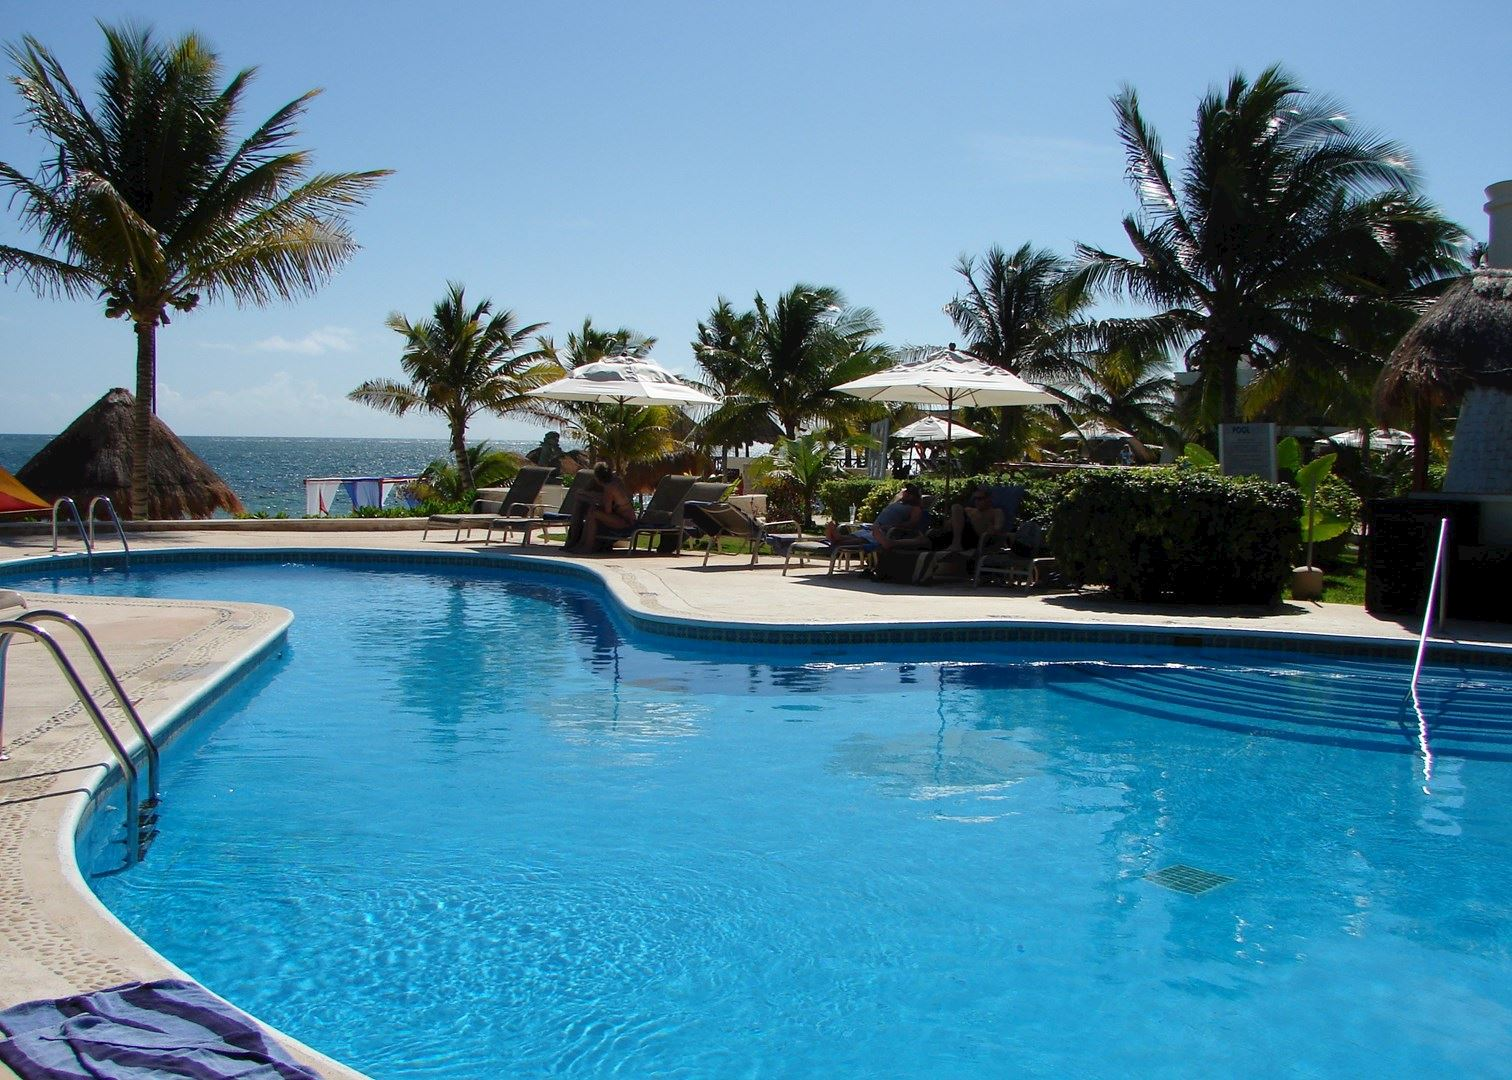 Azul Beach Hotel  The Mayan Riviera  Audley Travel